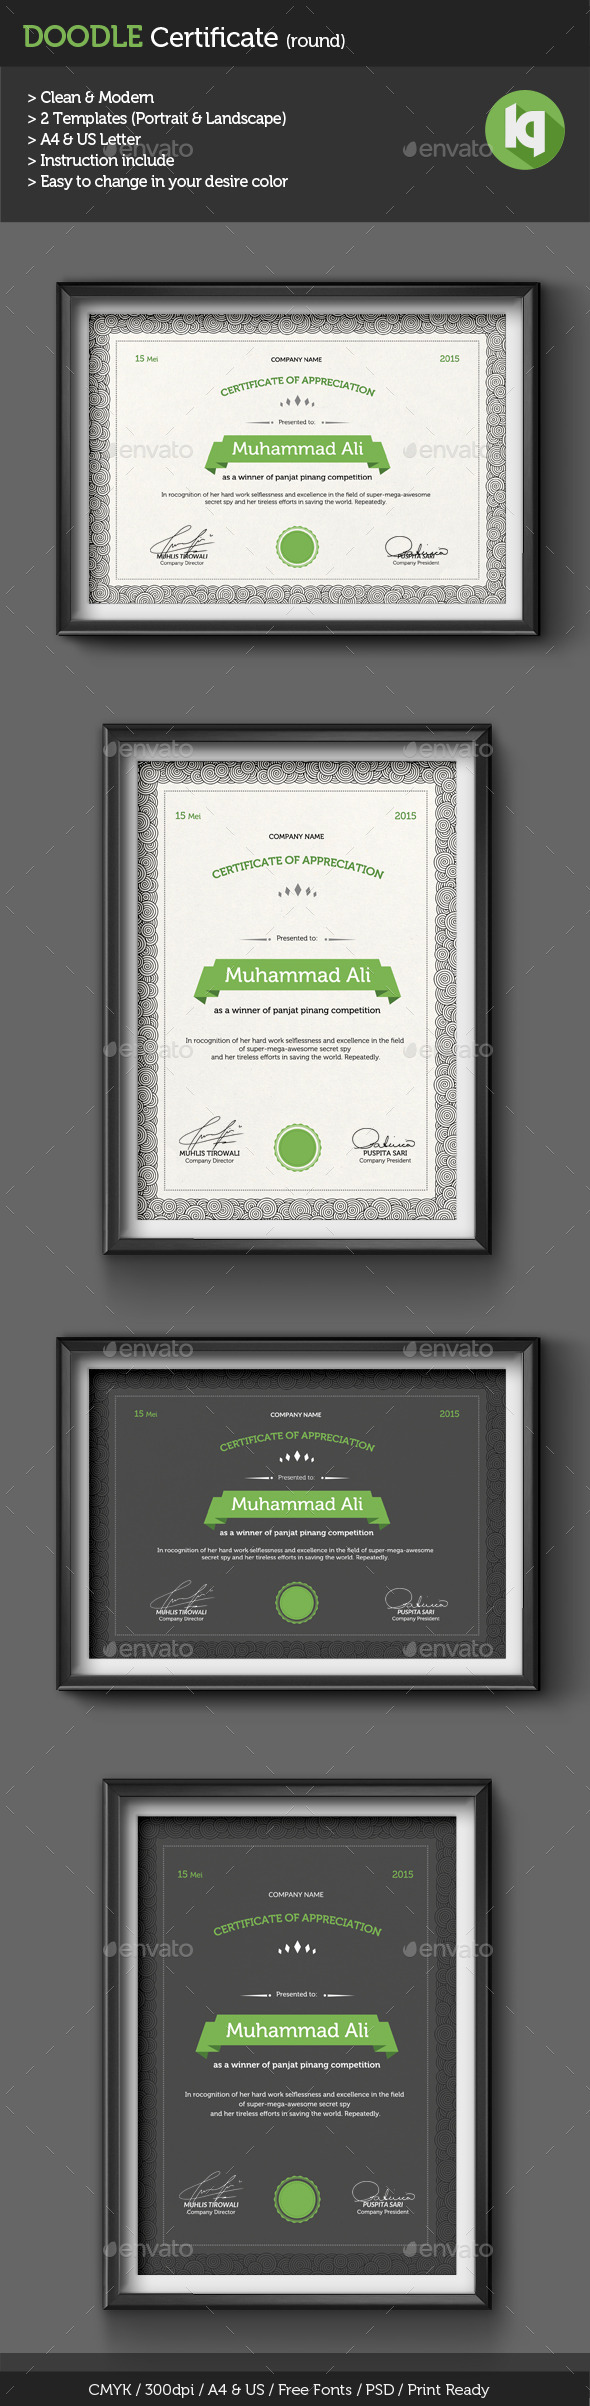 Doodle certificate template round by kholispress on deviantart doodle certificate template round by kholispress yadclub Image collections